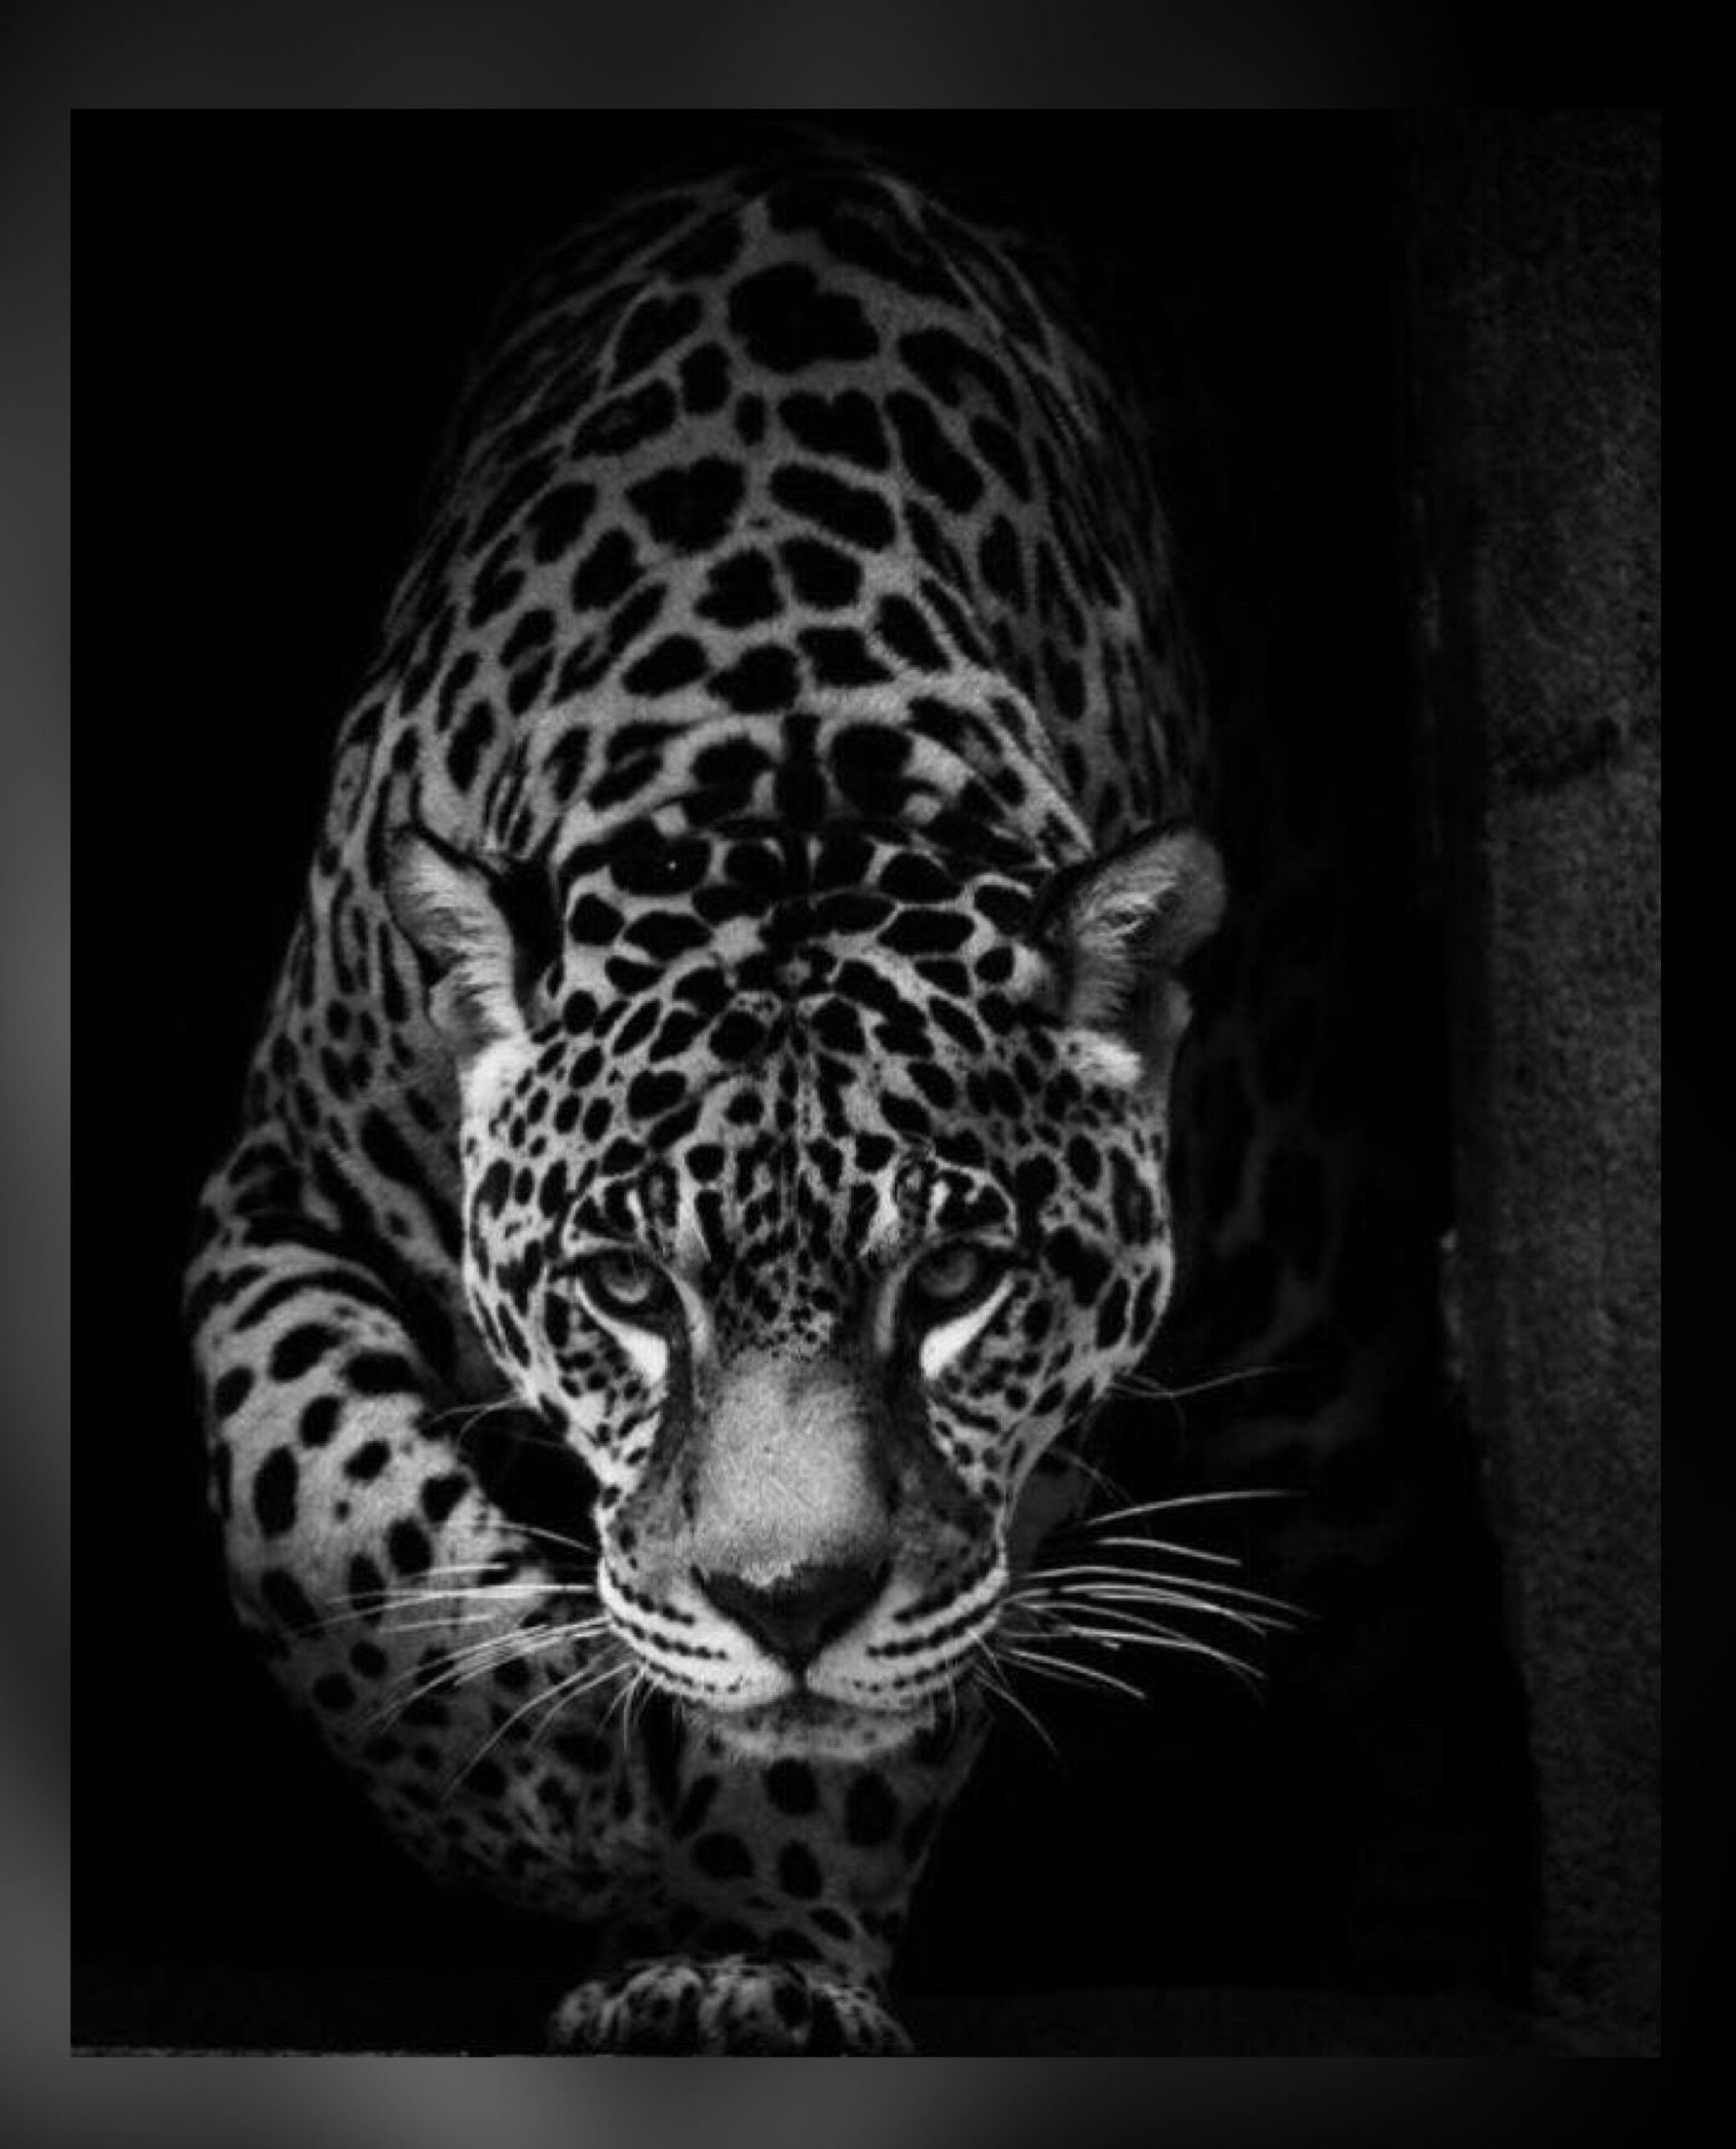 Pin By Kar3n 59 On Jehovah S Awesome Creation Black Jaguar Animal Jaguar Animal Wild Animal Wallpaper